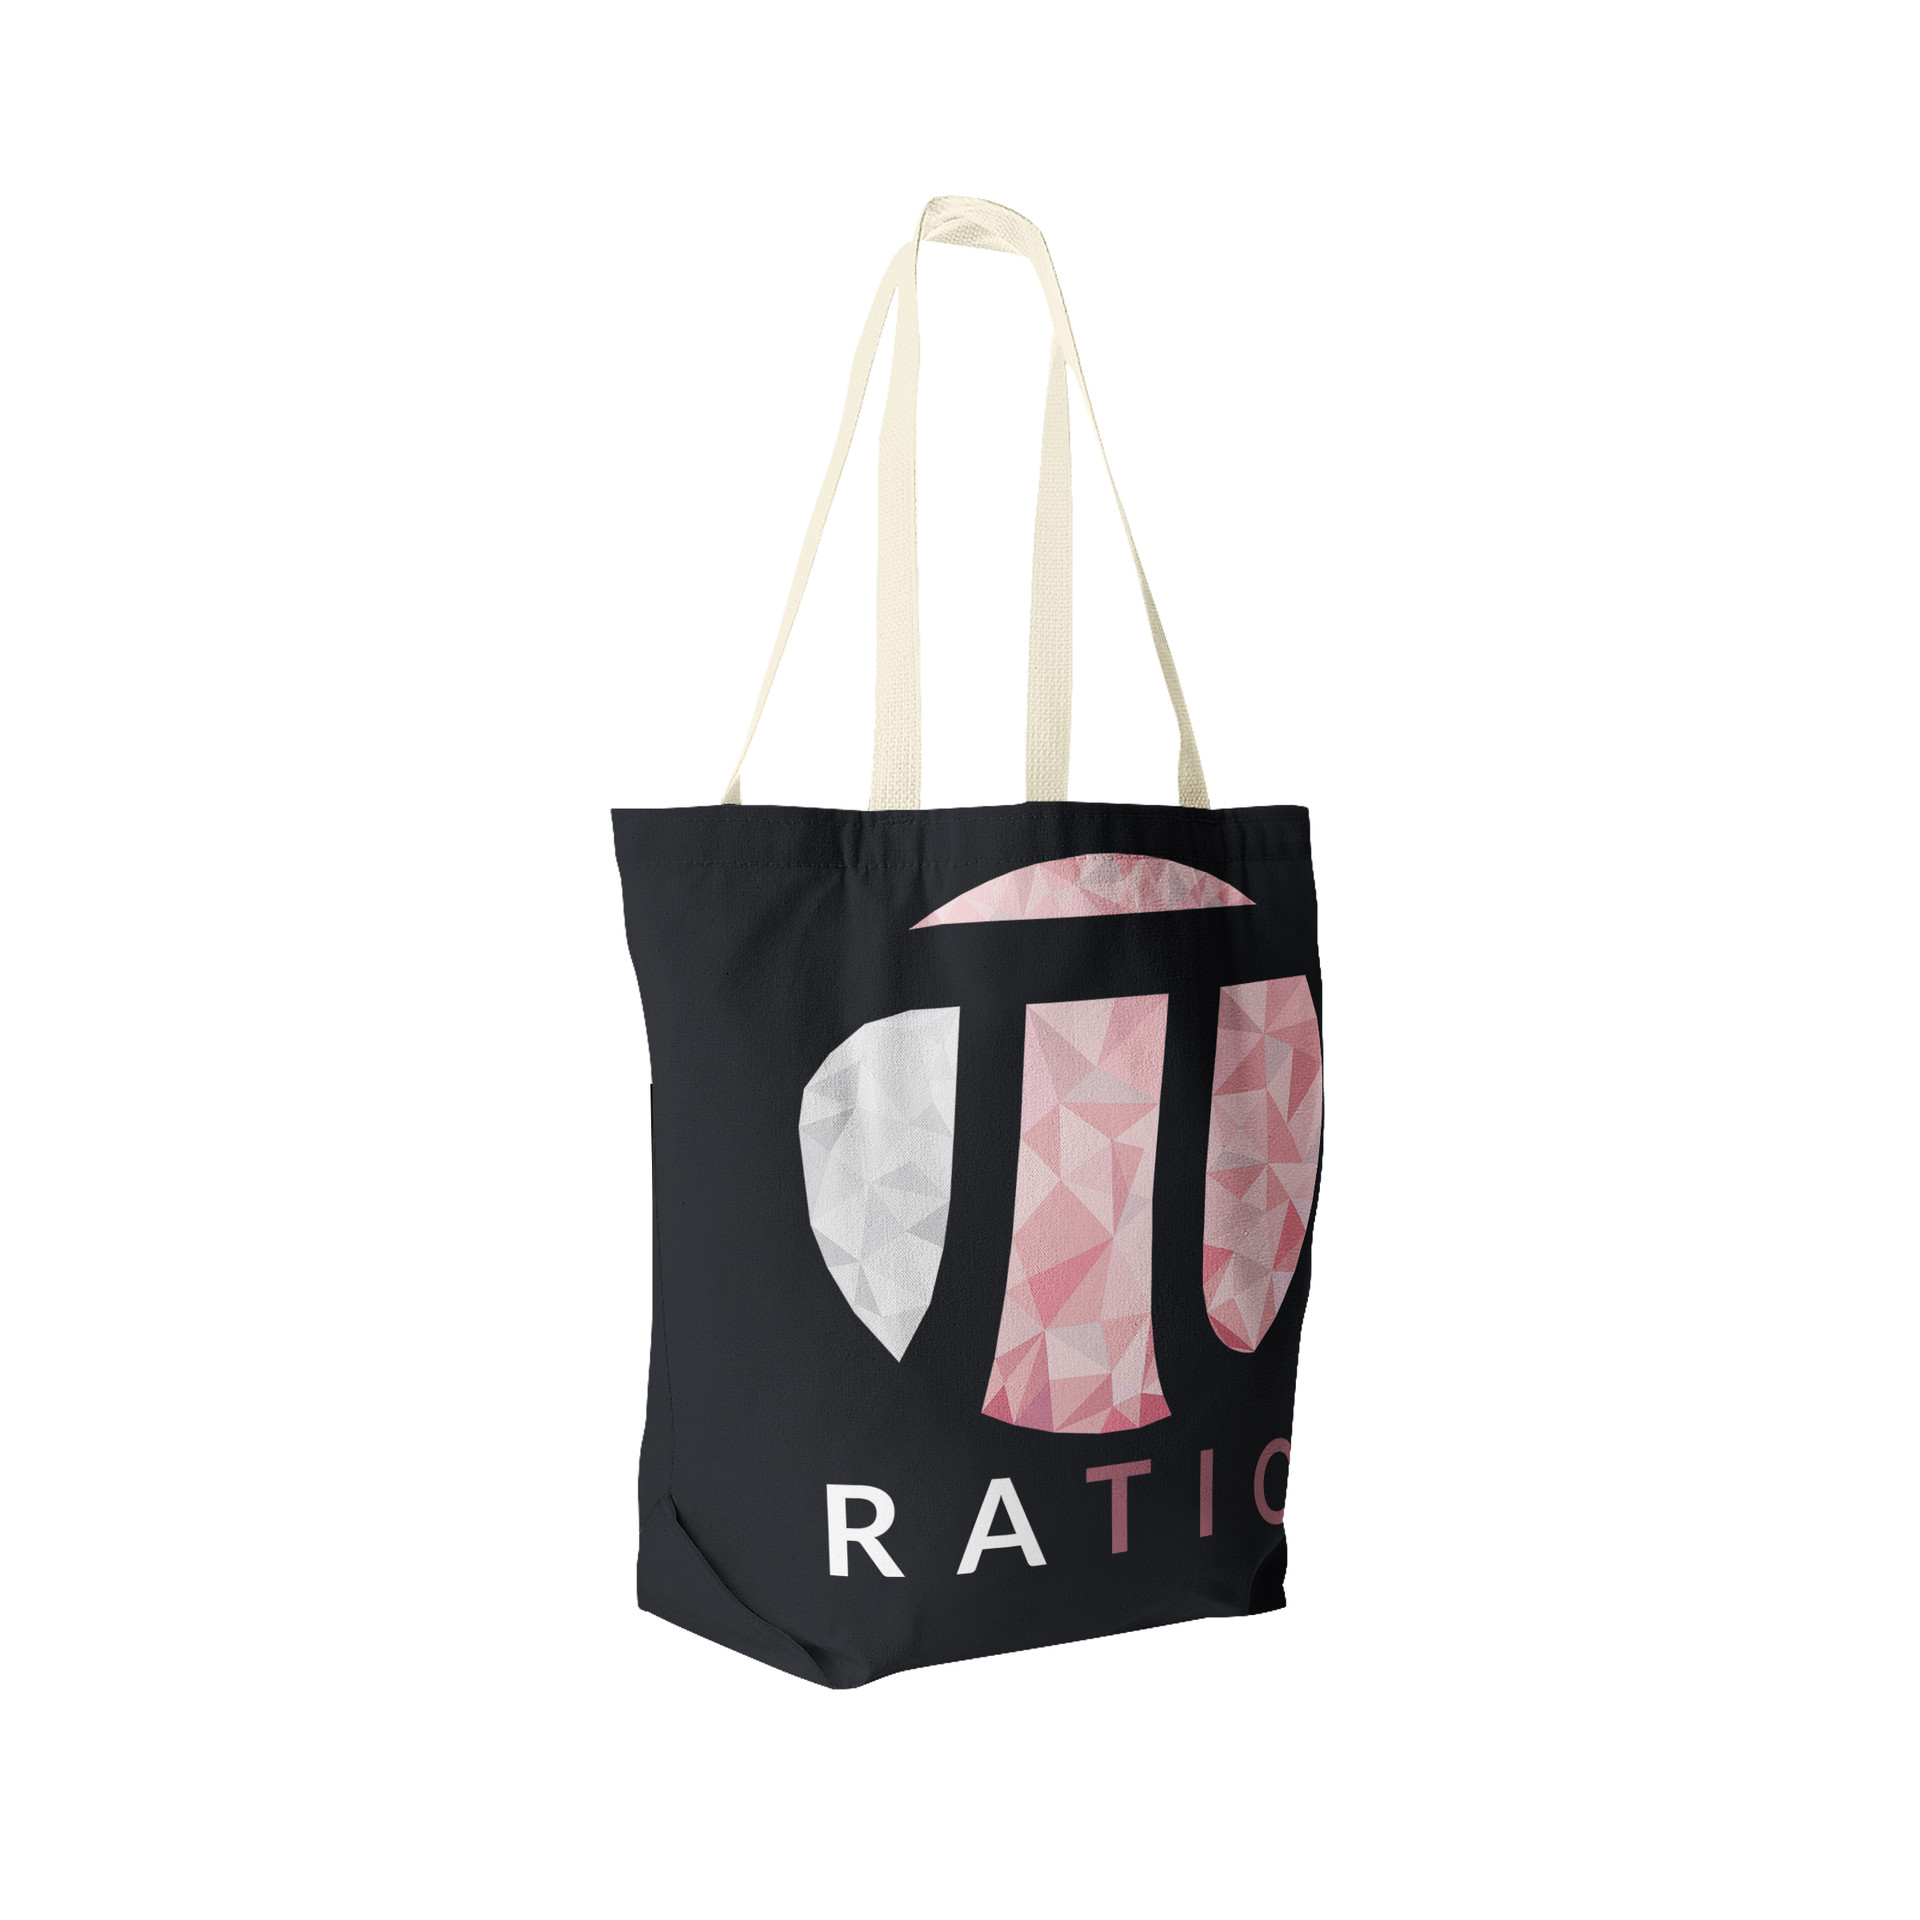 Jerry ubah ratio tote bag perspective view